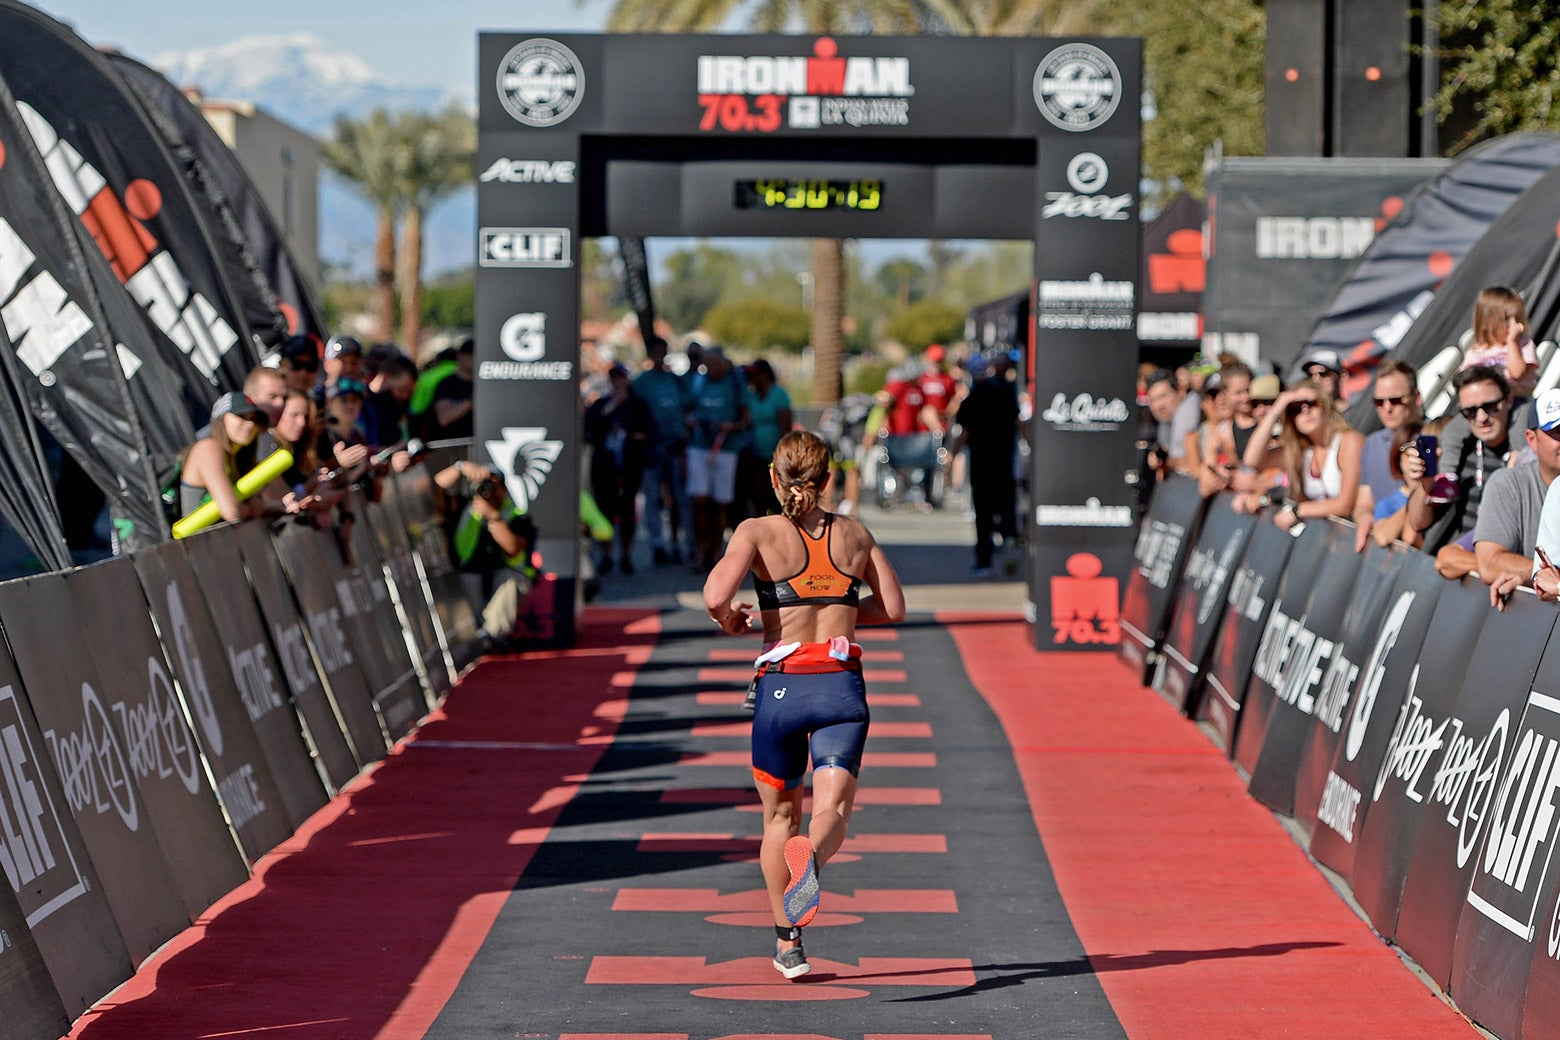 A woman runs toward the finish line at the Ironman 70.3 Indian Wells La Quinta on Dec. 9 in California.